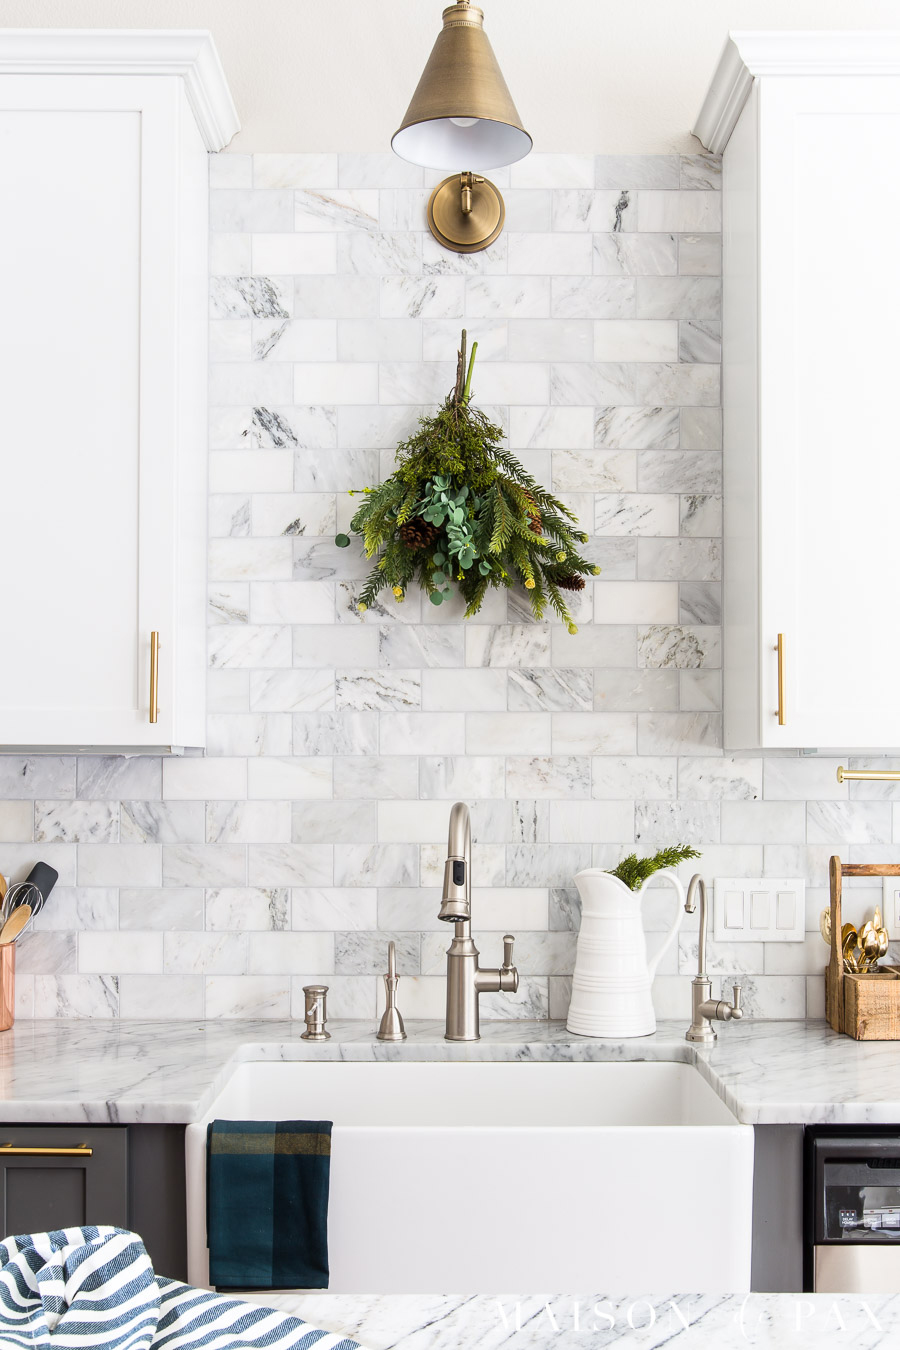 Christmas kitchen decor can be charming without being complicated. Use  these easy holiday decorating ideas to add some simple, natural, fresh  holiday